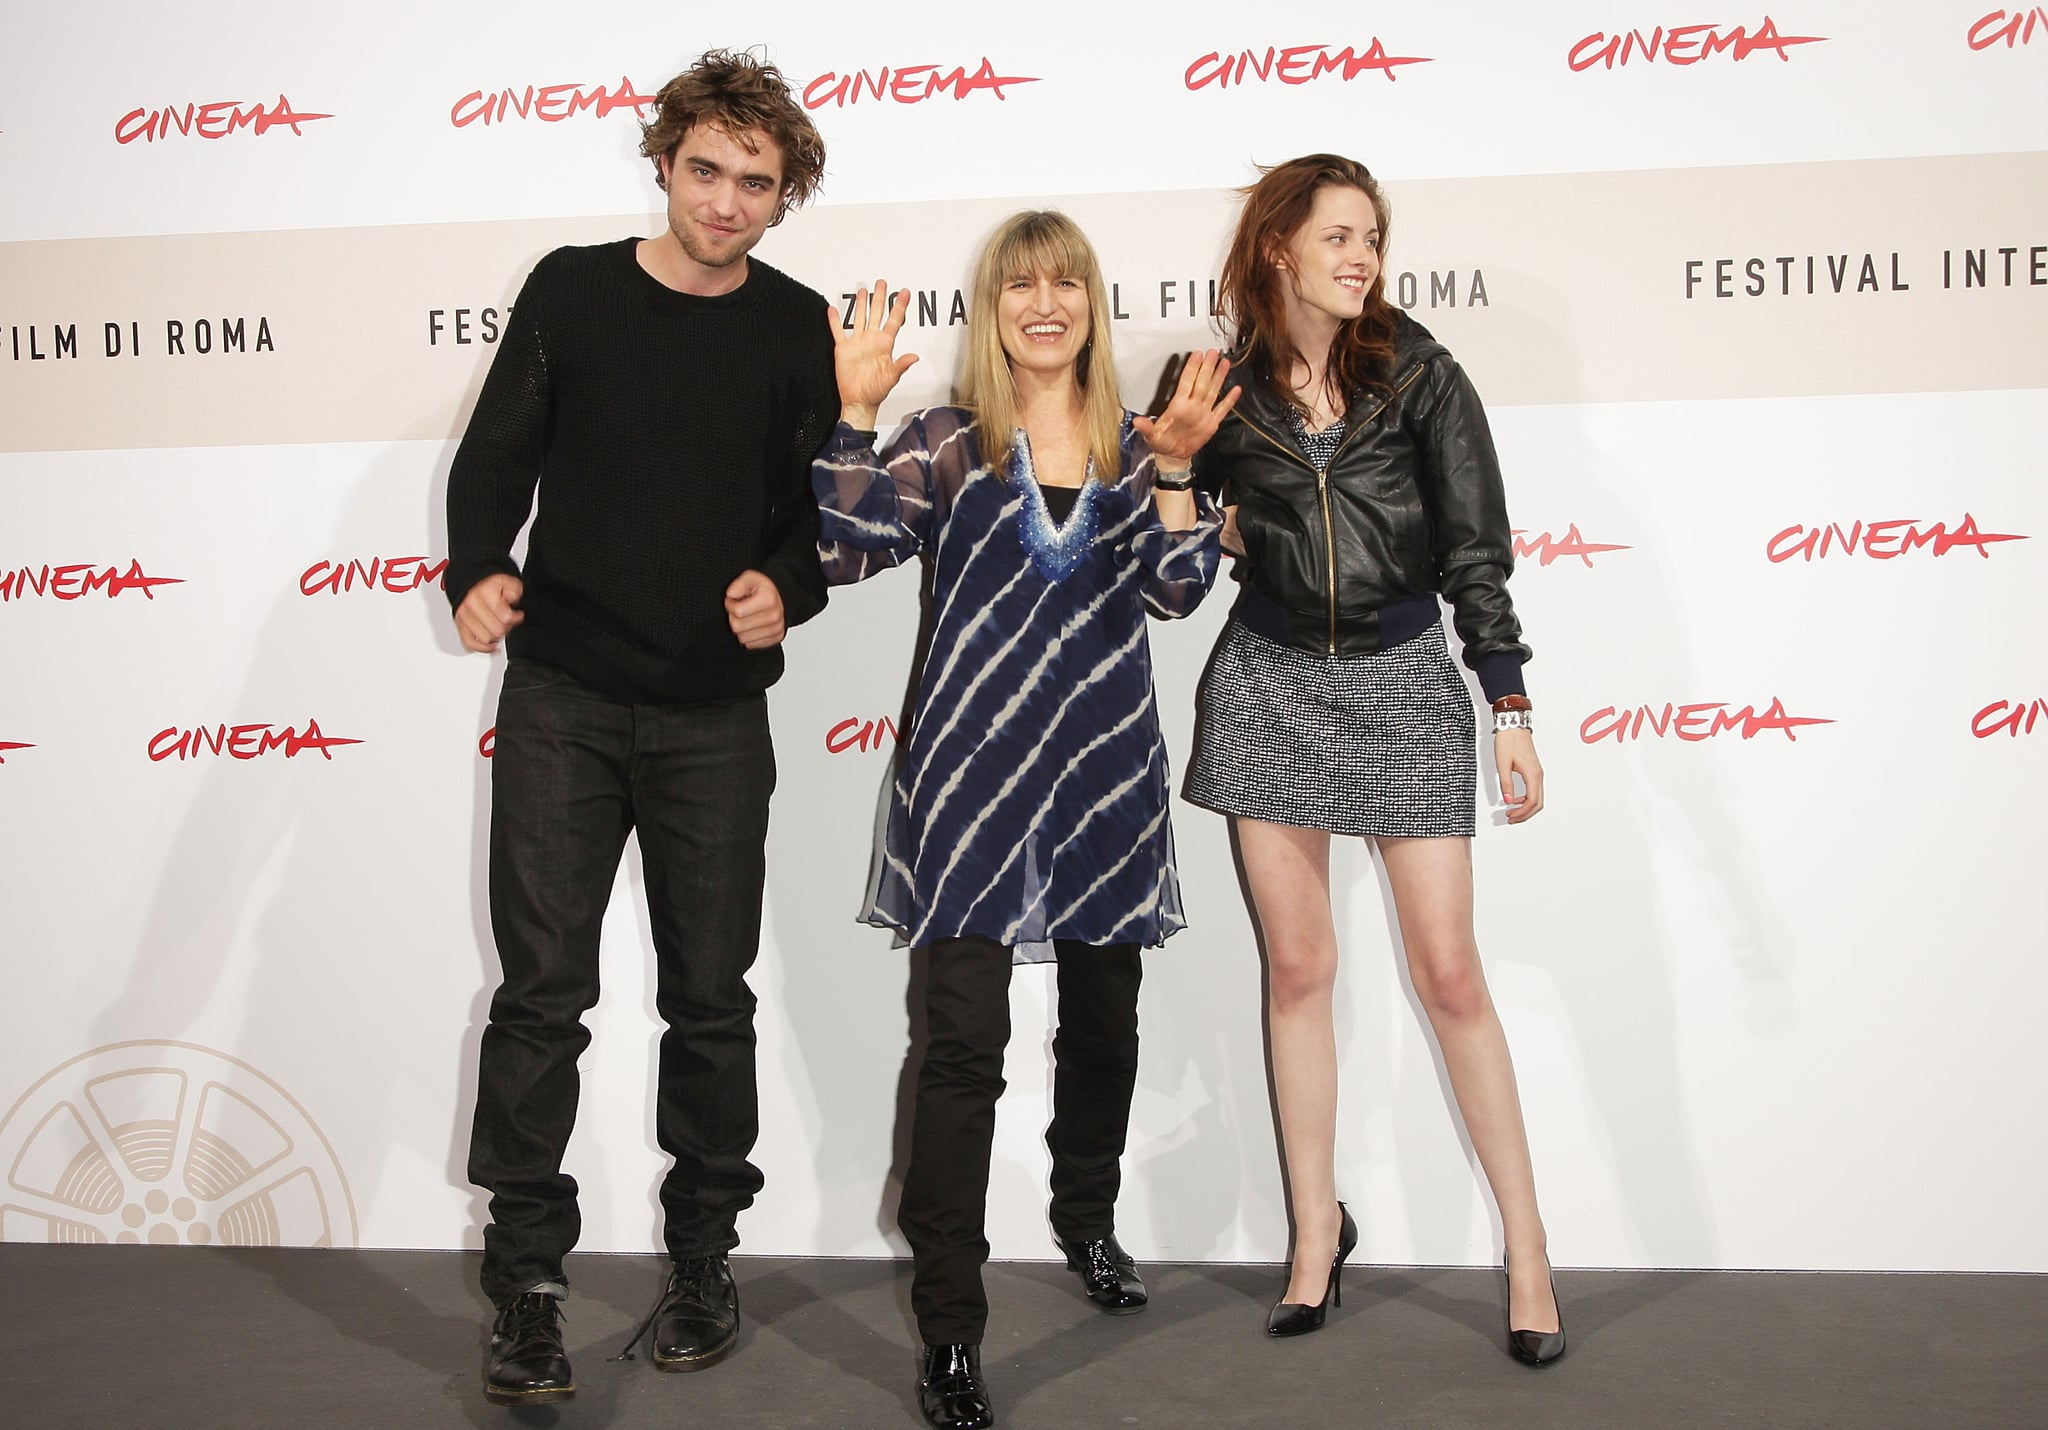 ROME - OCTOBER 30:  Actor Robert Pattinson, director Catherine Hardwicke and actress Kristen Stewart attends the 'Twilight'  Photocall during the 3rd Rome International Film Festival held at the Auditorium Parco della Musica on October 30, 2008 in Rome, Italy.  (Photo by Franco Origlia/Getty Images)